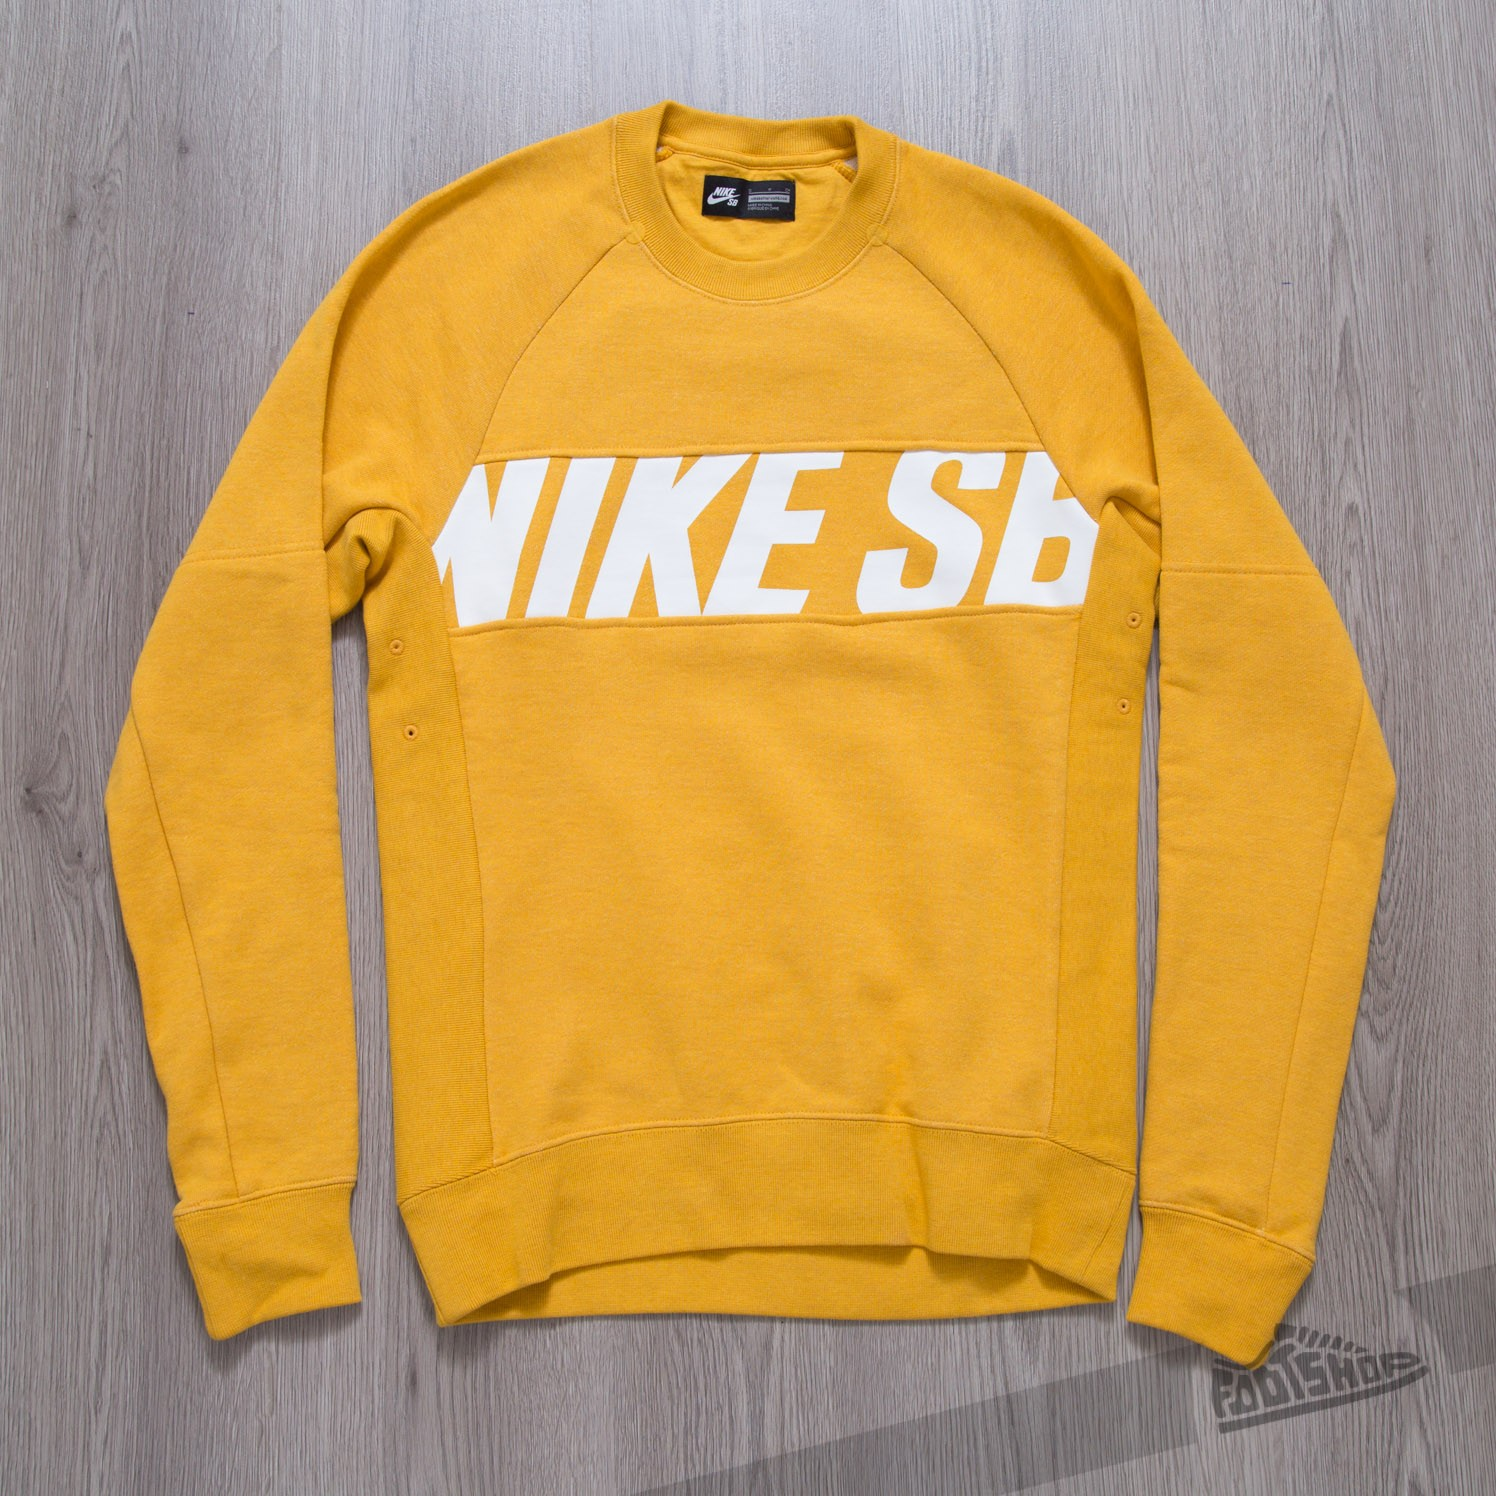 Nike Crew YellowFootshop Sweatshirt Sb Everett Motion xBrChQtosd